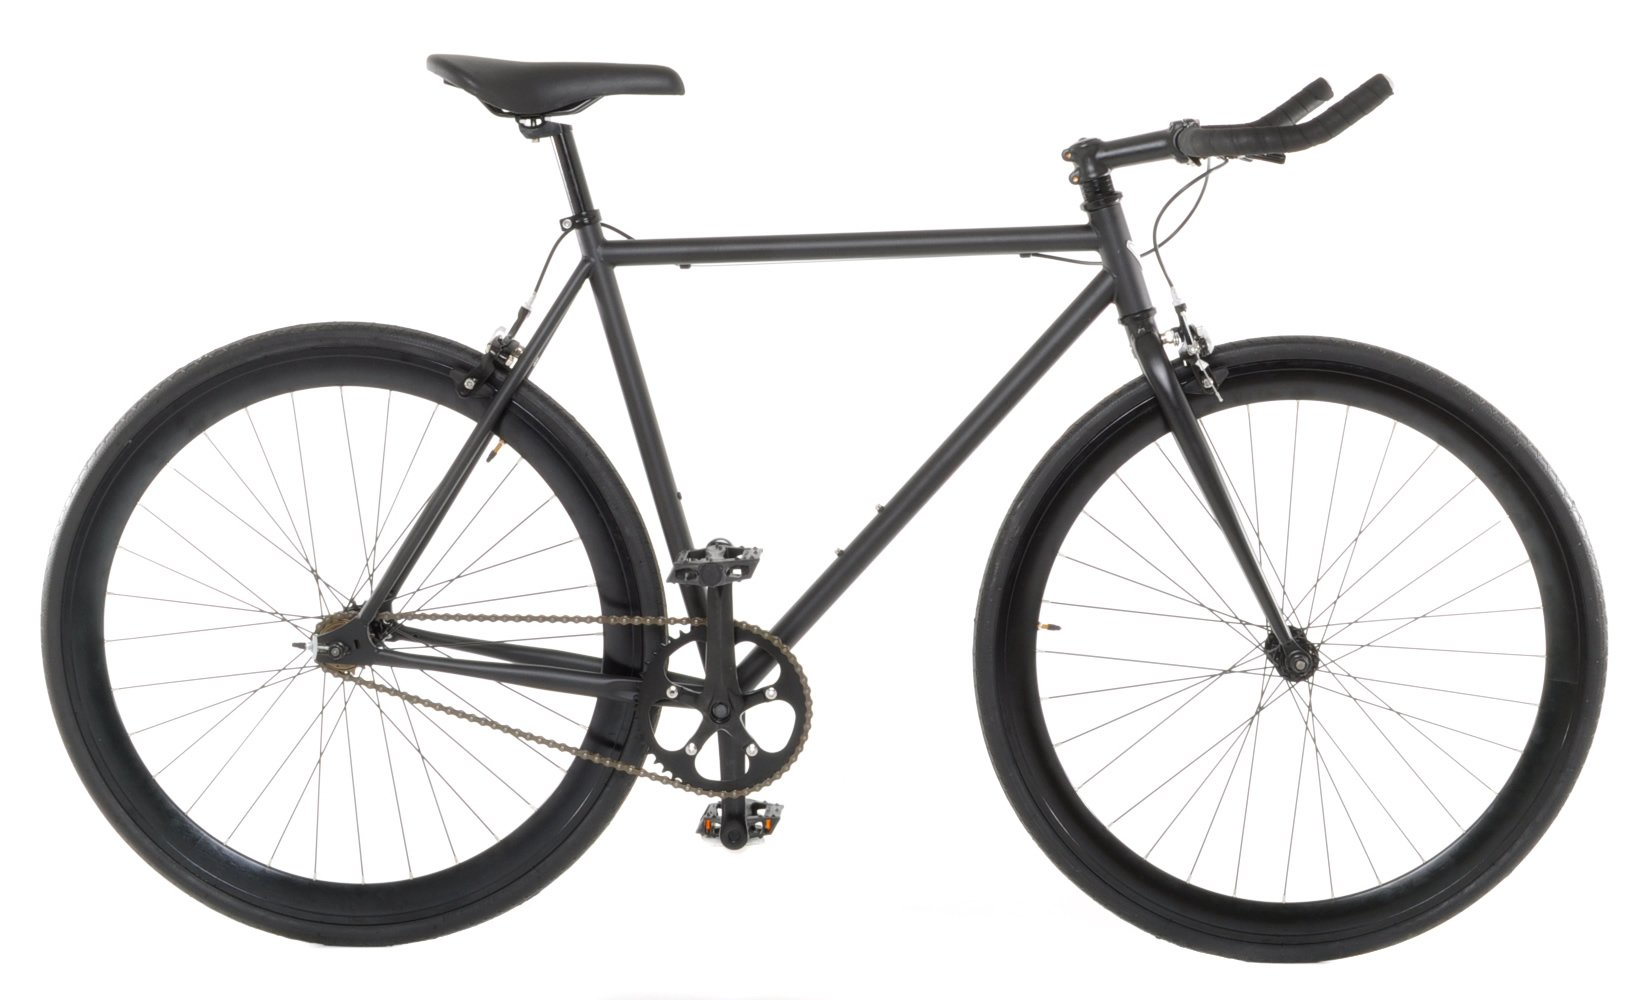 New Fixie Bike Vilano Edge Fixed Gear Single Speed Bike, Medium, Matte Black